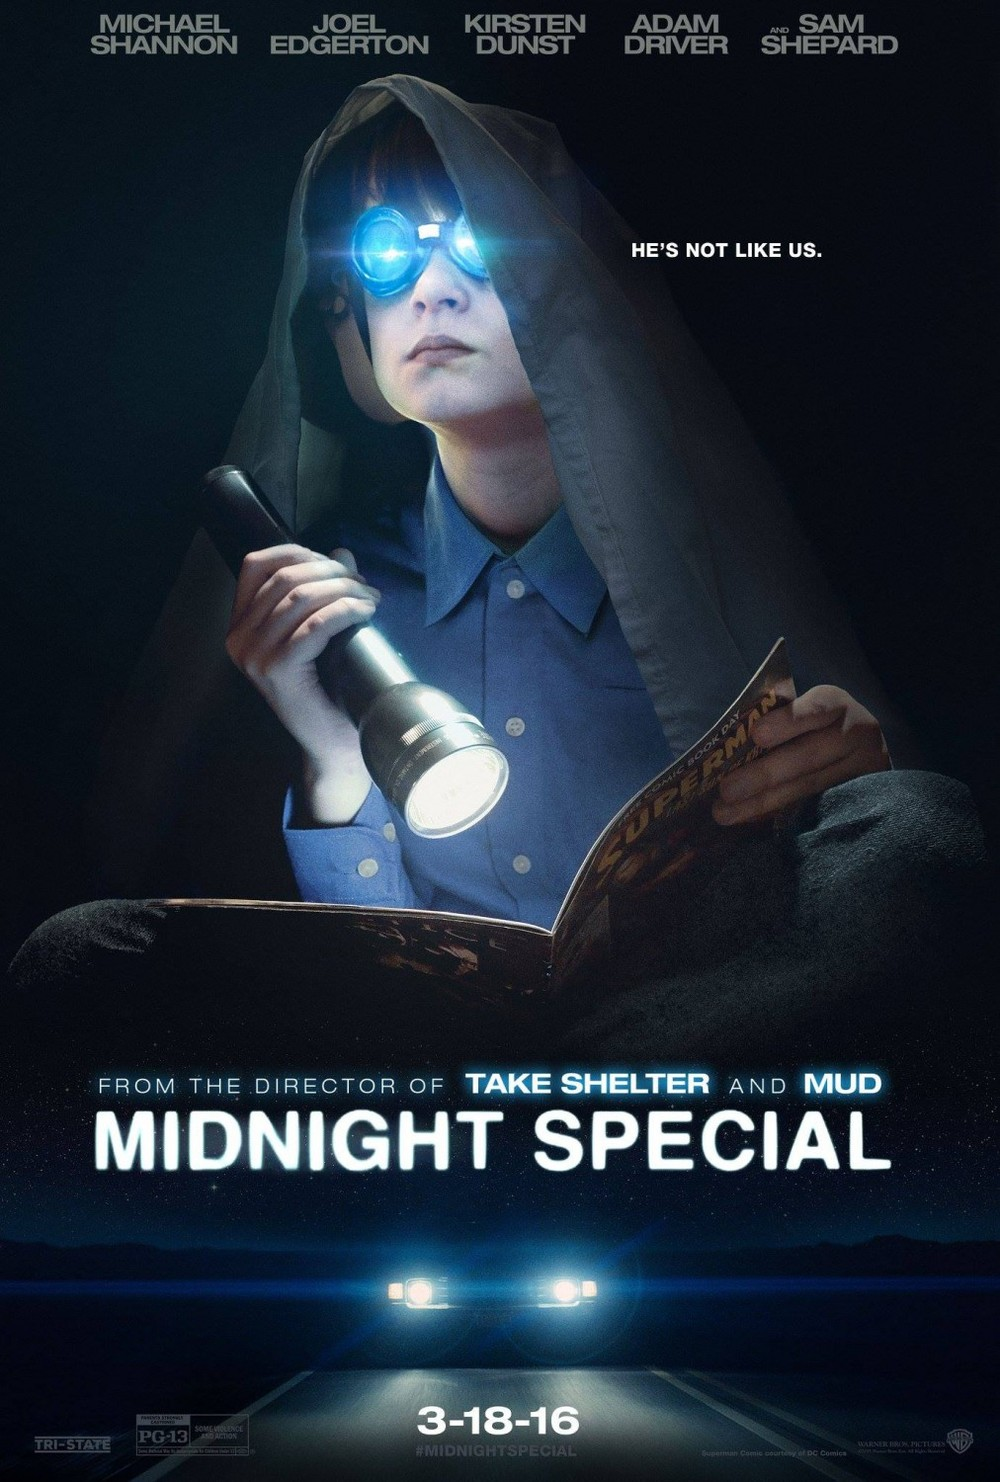 Midnight Special   (2016) dir. Jeff Nichols Rated: PG-13 image: ©2016  Warner Bros. Pictures